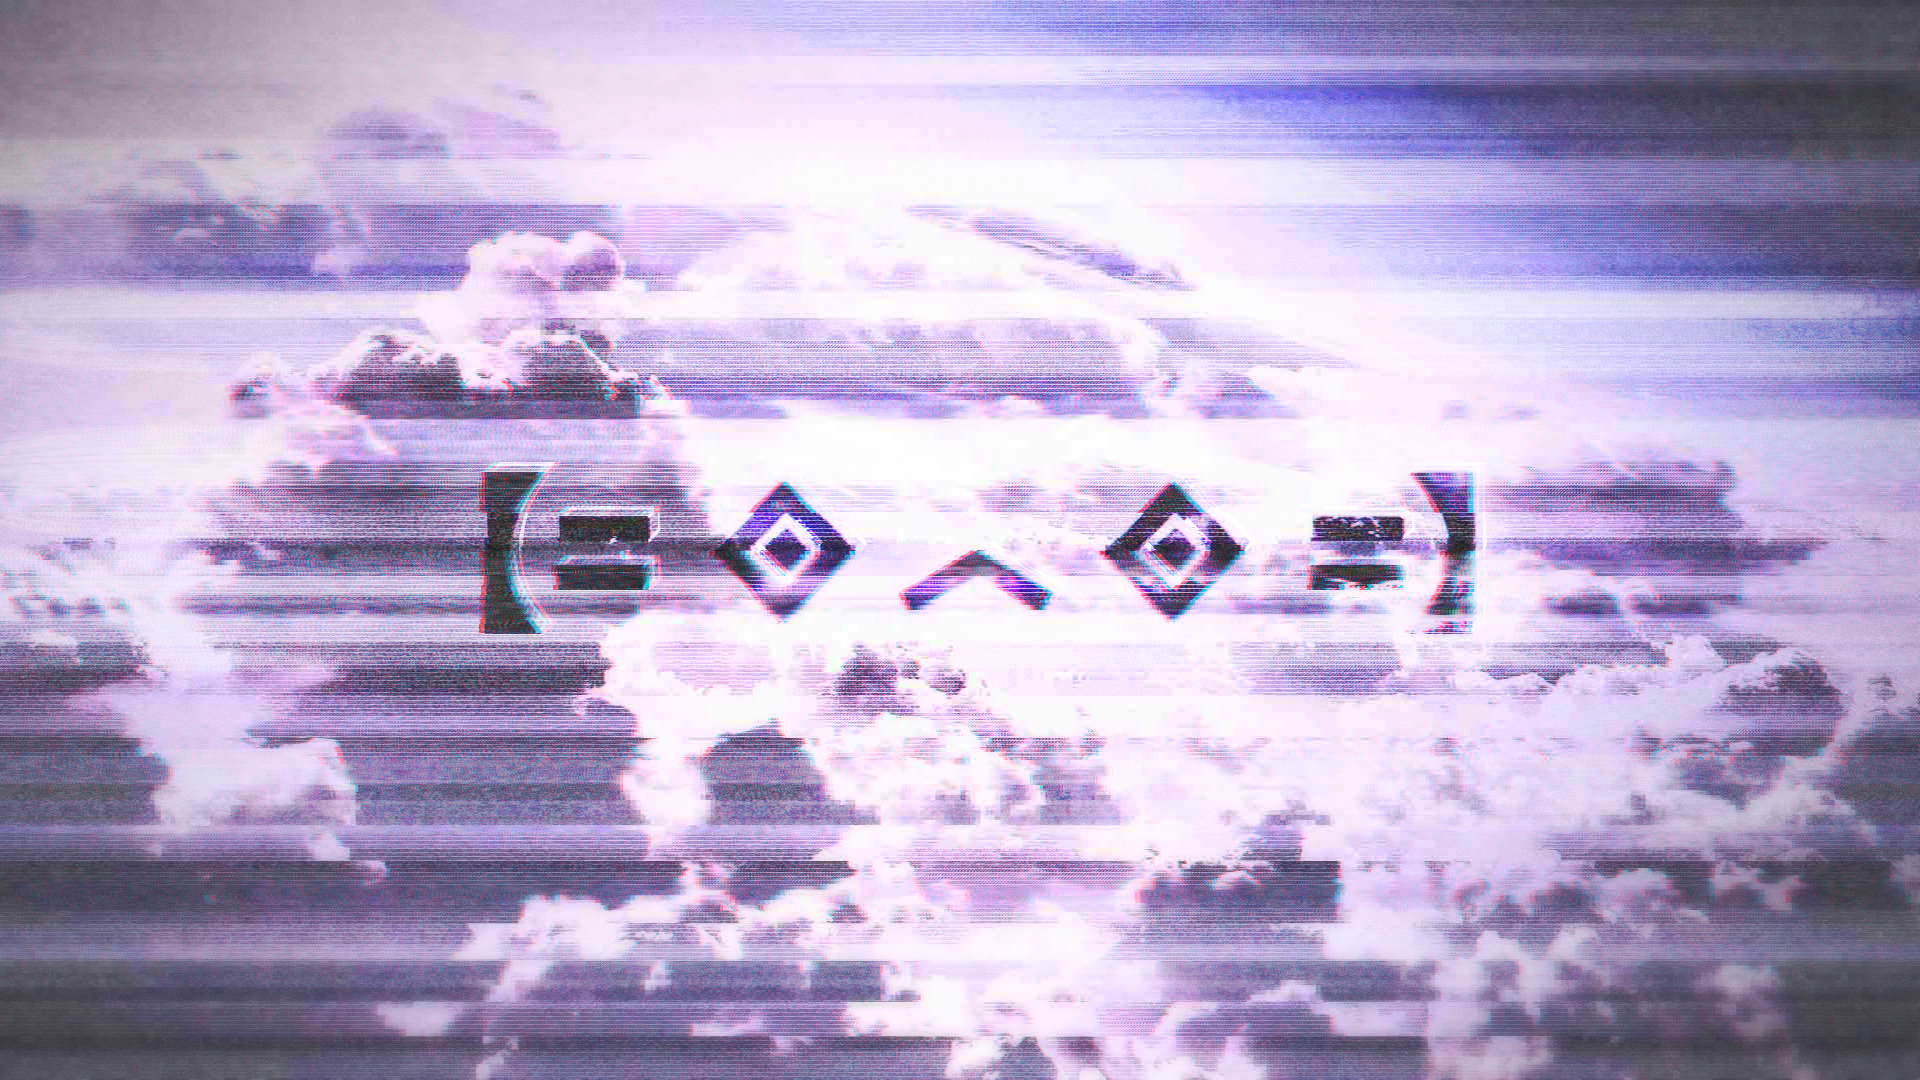 63 Porter Robinson Language Wallpaper Anyone Have Any Cool EDM